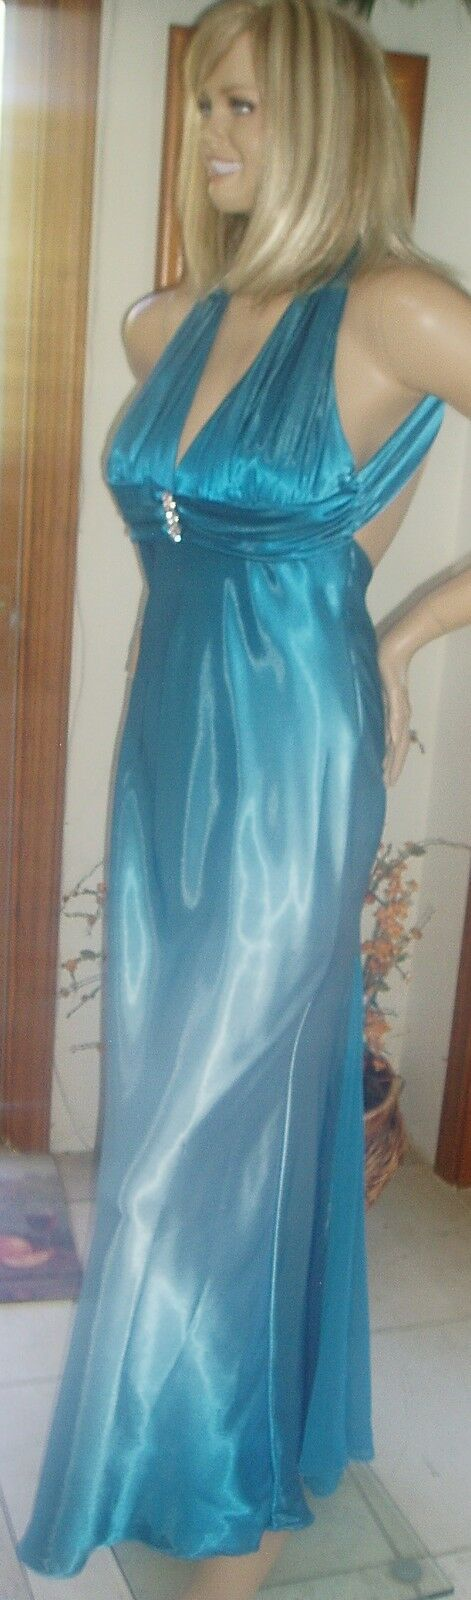 MSRP  CACHE S 8 TEAL blueE W CENTER RHINESTONE ORNAMENTATION HALTER GOWN